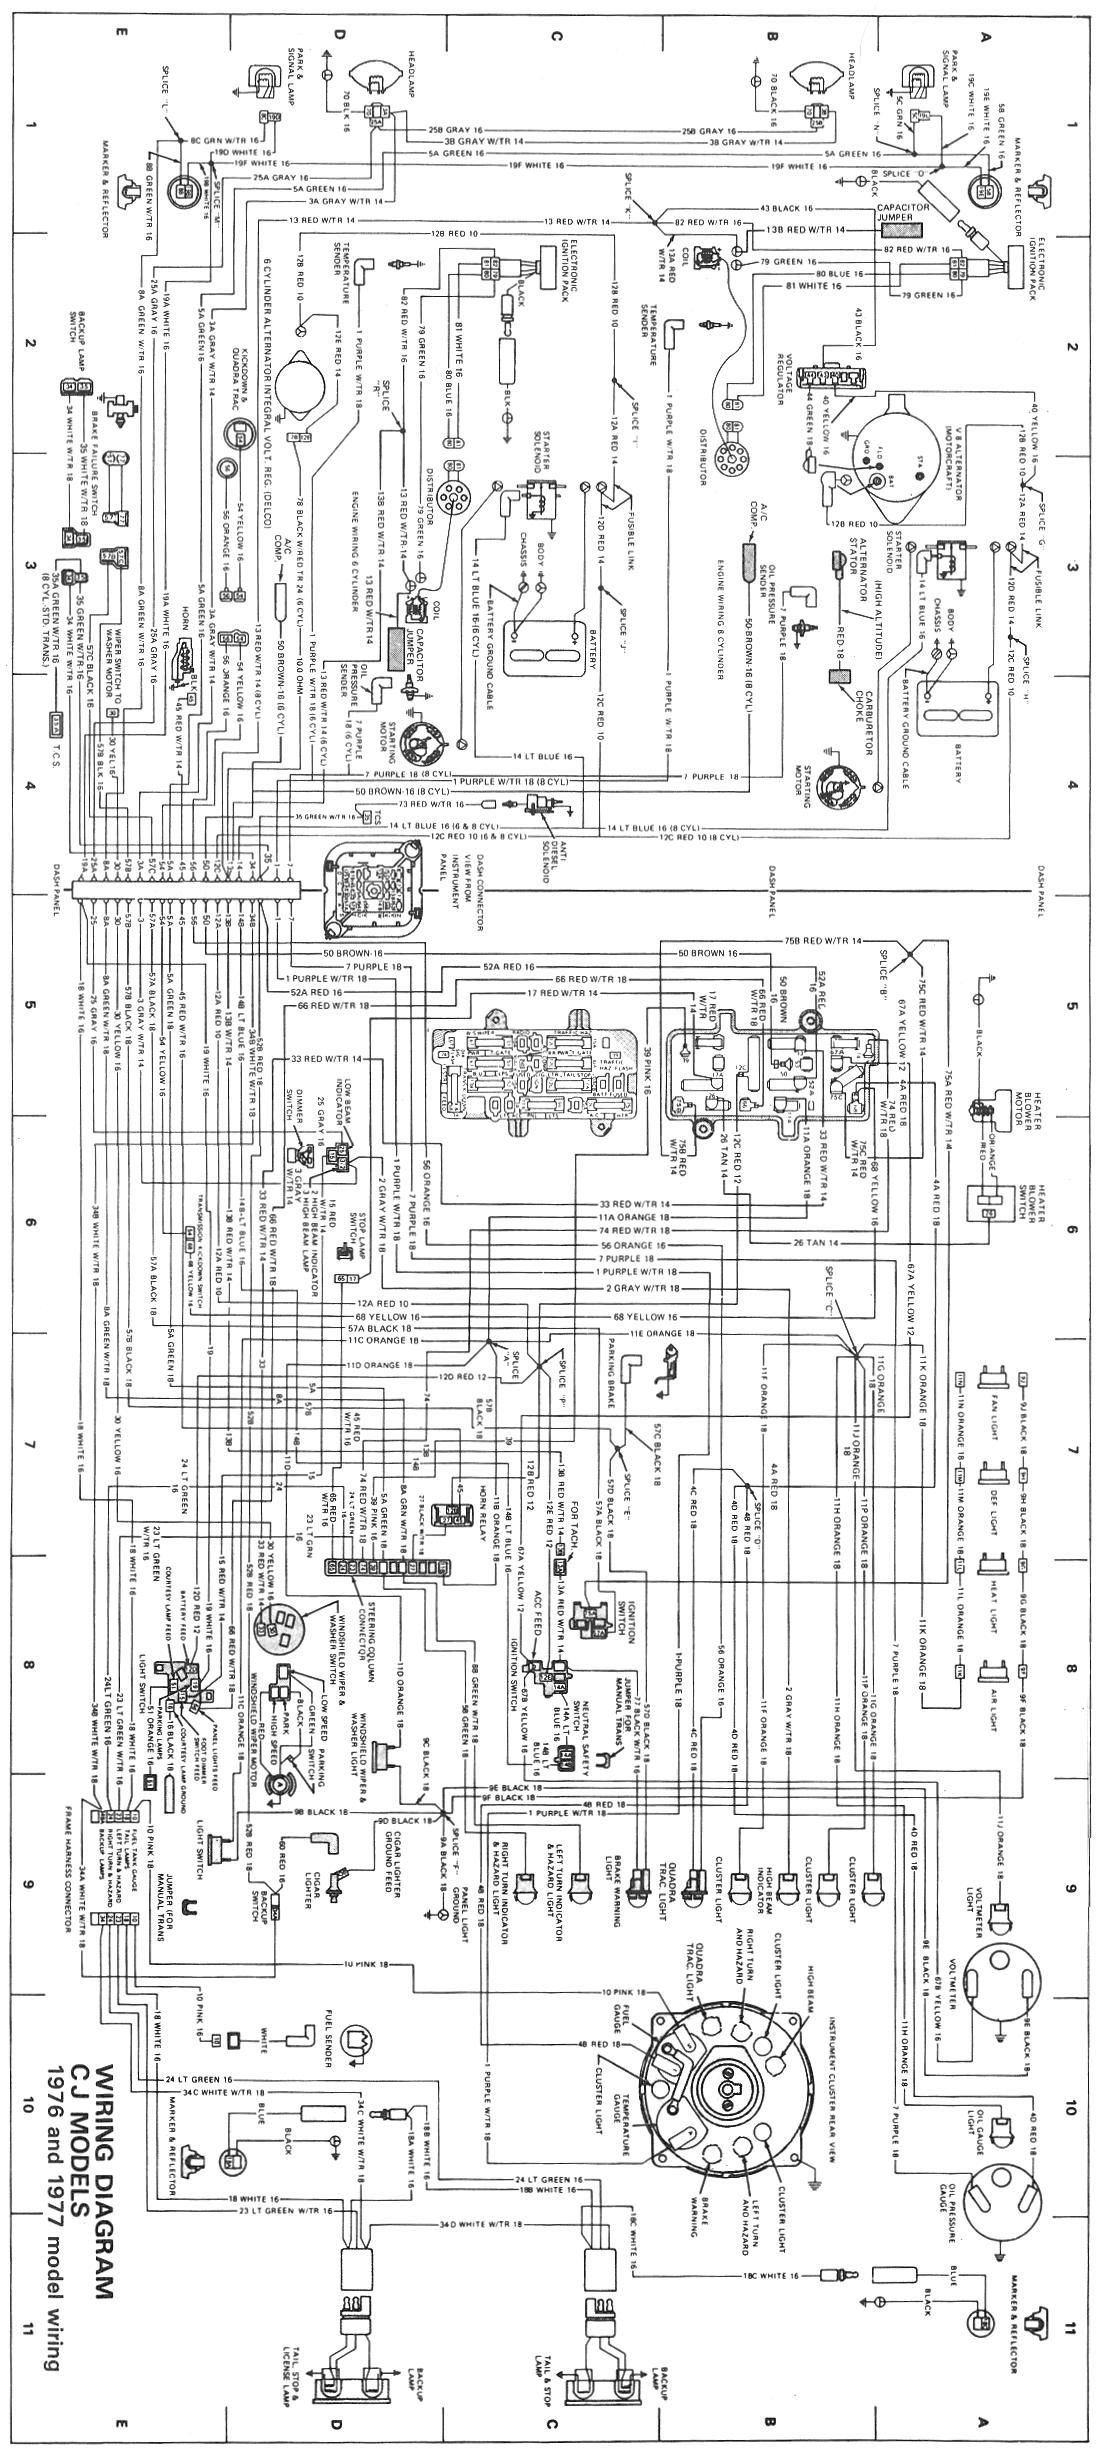 8d25ded6e3673519e155875e09844e5e cj wiring diagram 1976 1977 jpg 1,100�2,459 pixels 1976 jeep cj5 Painless Wiring Harness Diagram at n-0.co